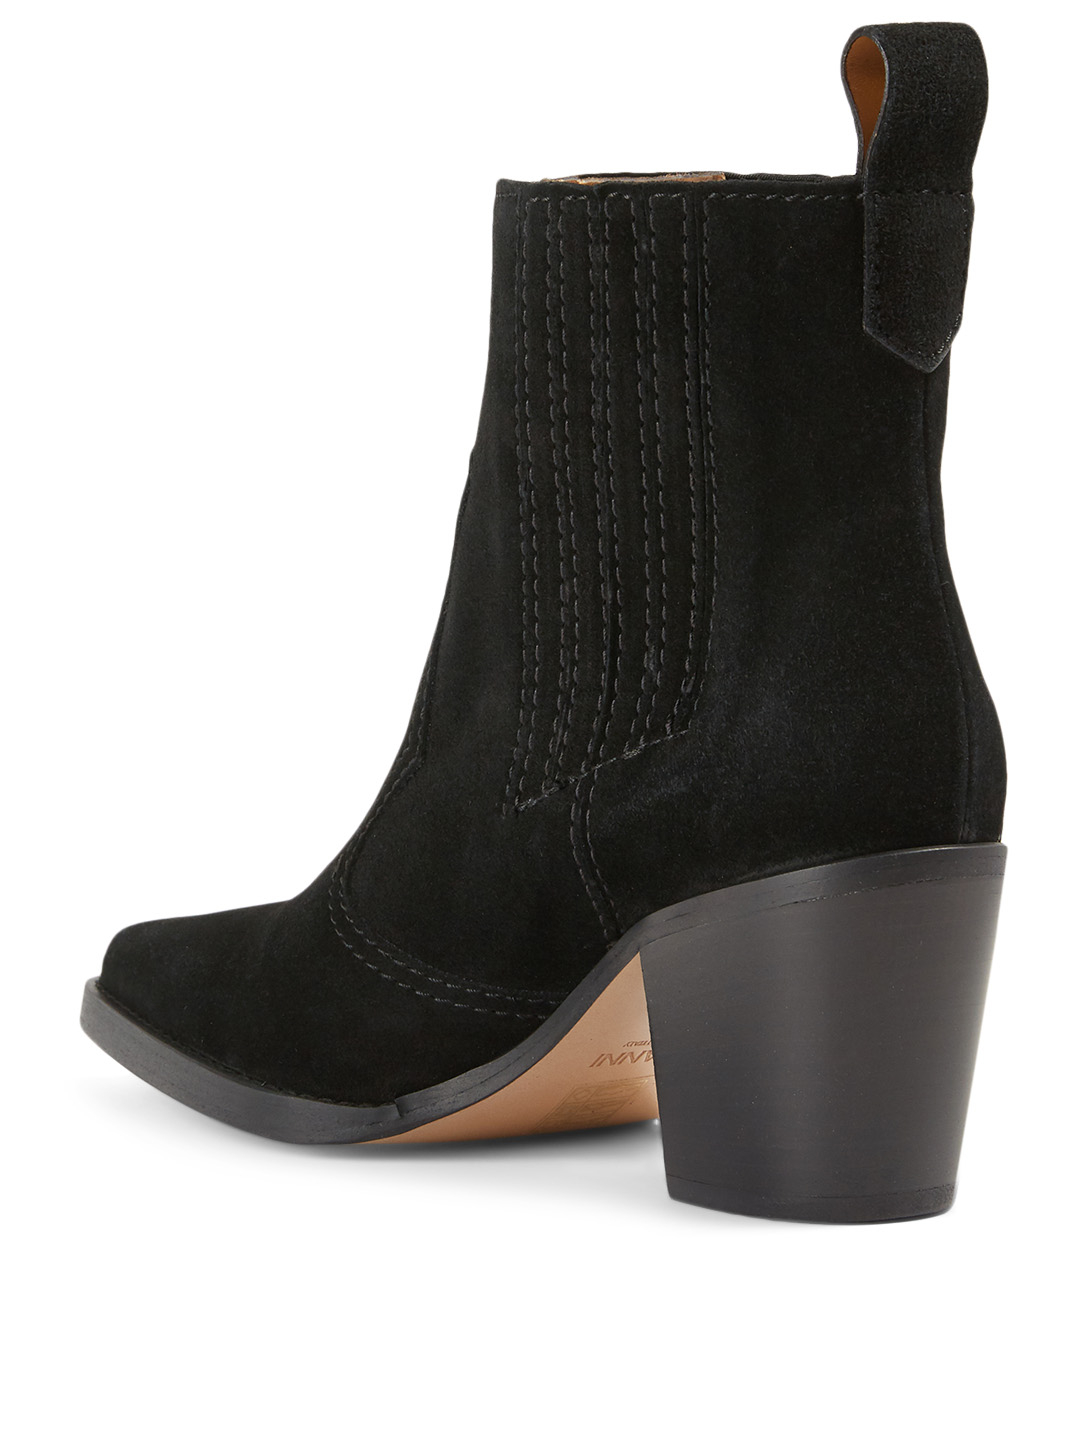 GANNI Suede Western Ankle Boots Women's Black